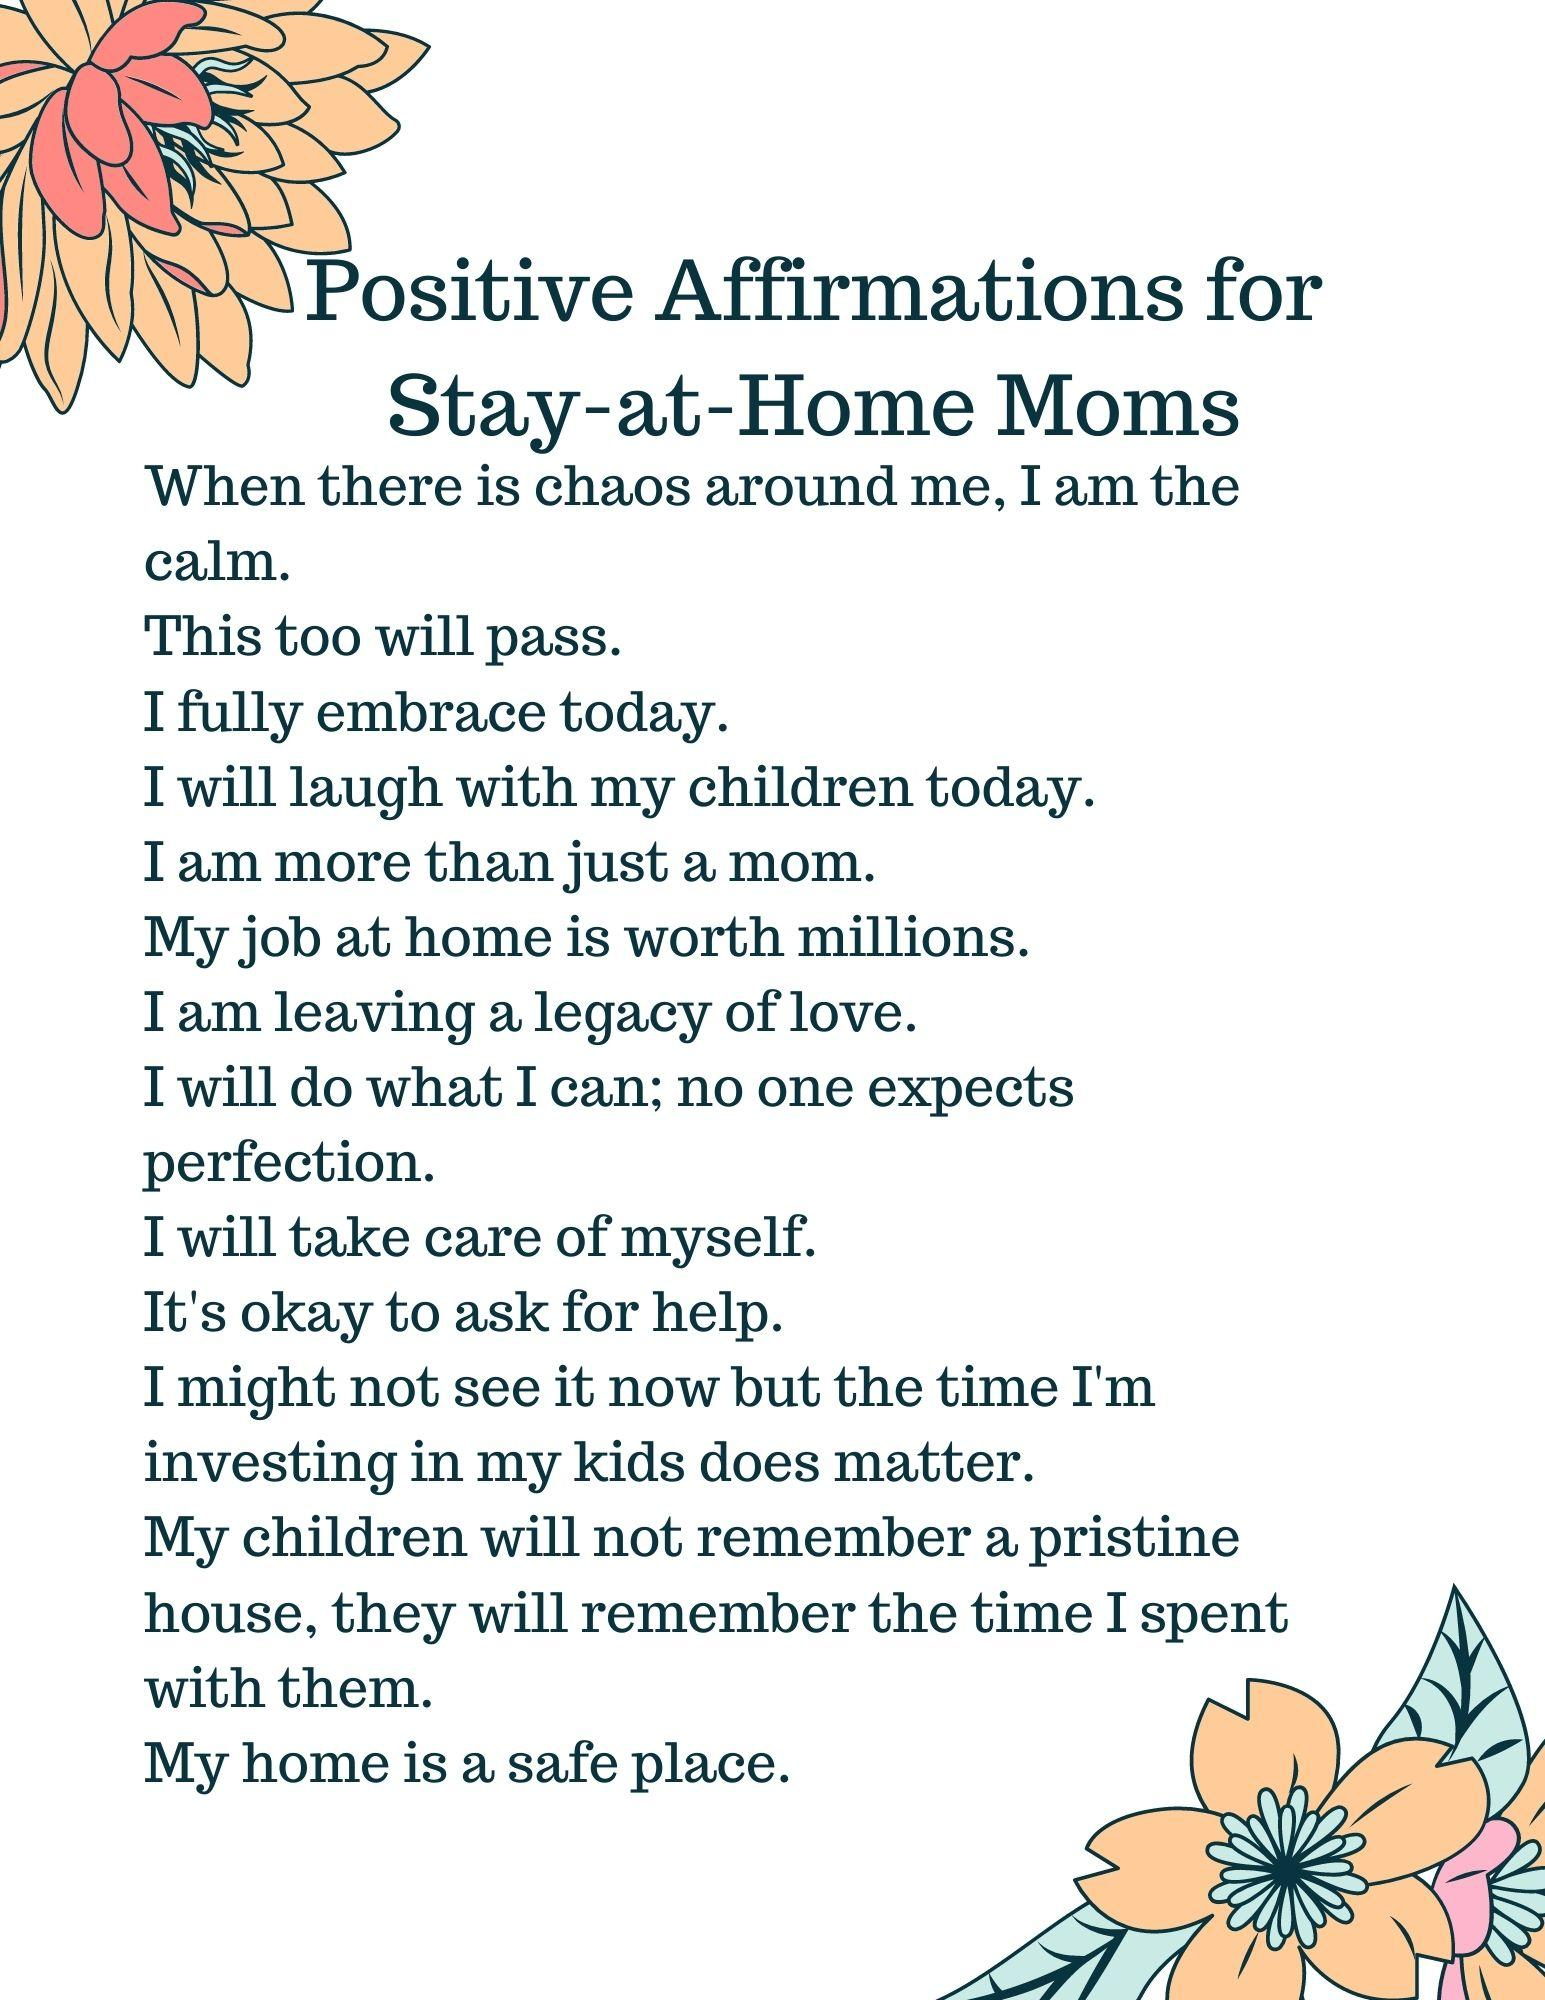 Positive Affirmations for Stay-at-Home Mom